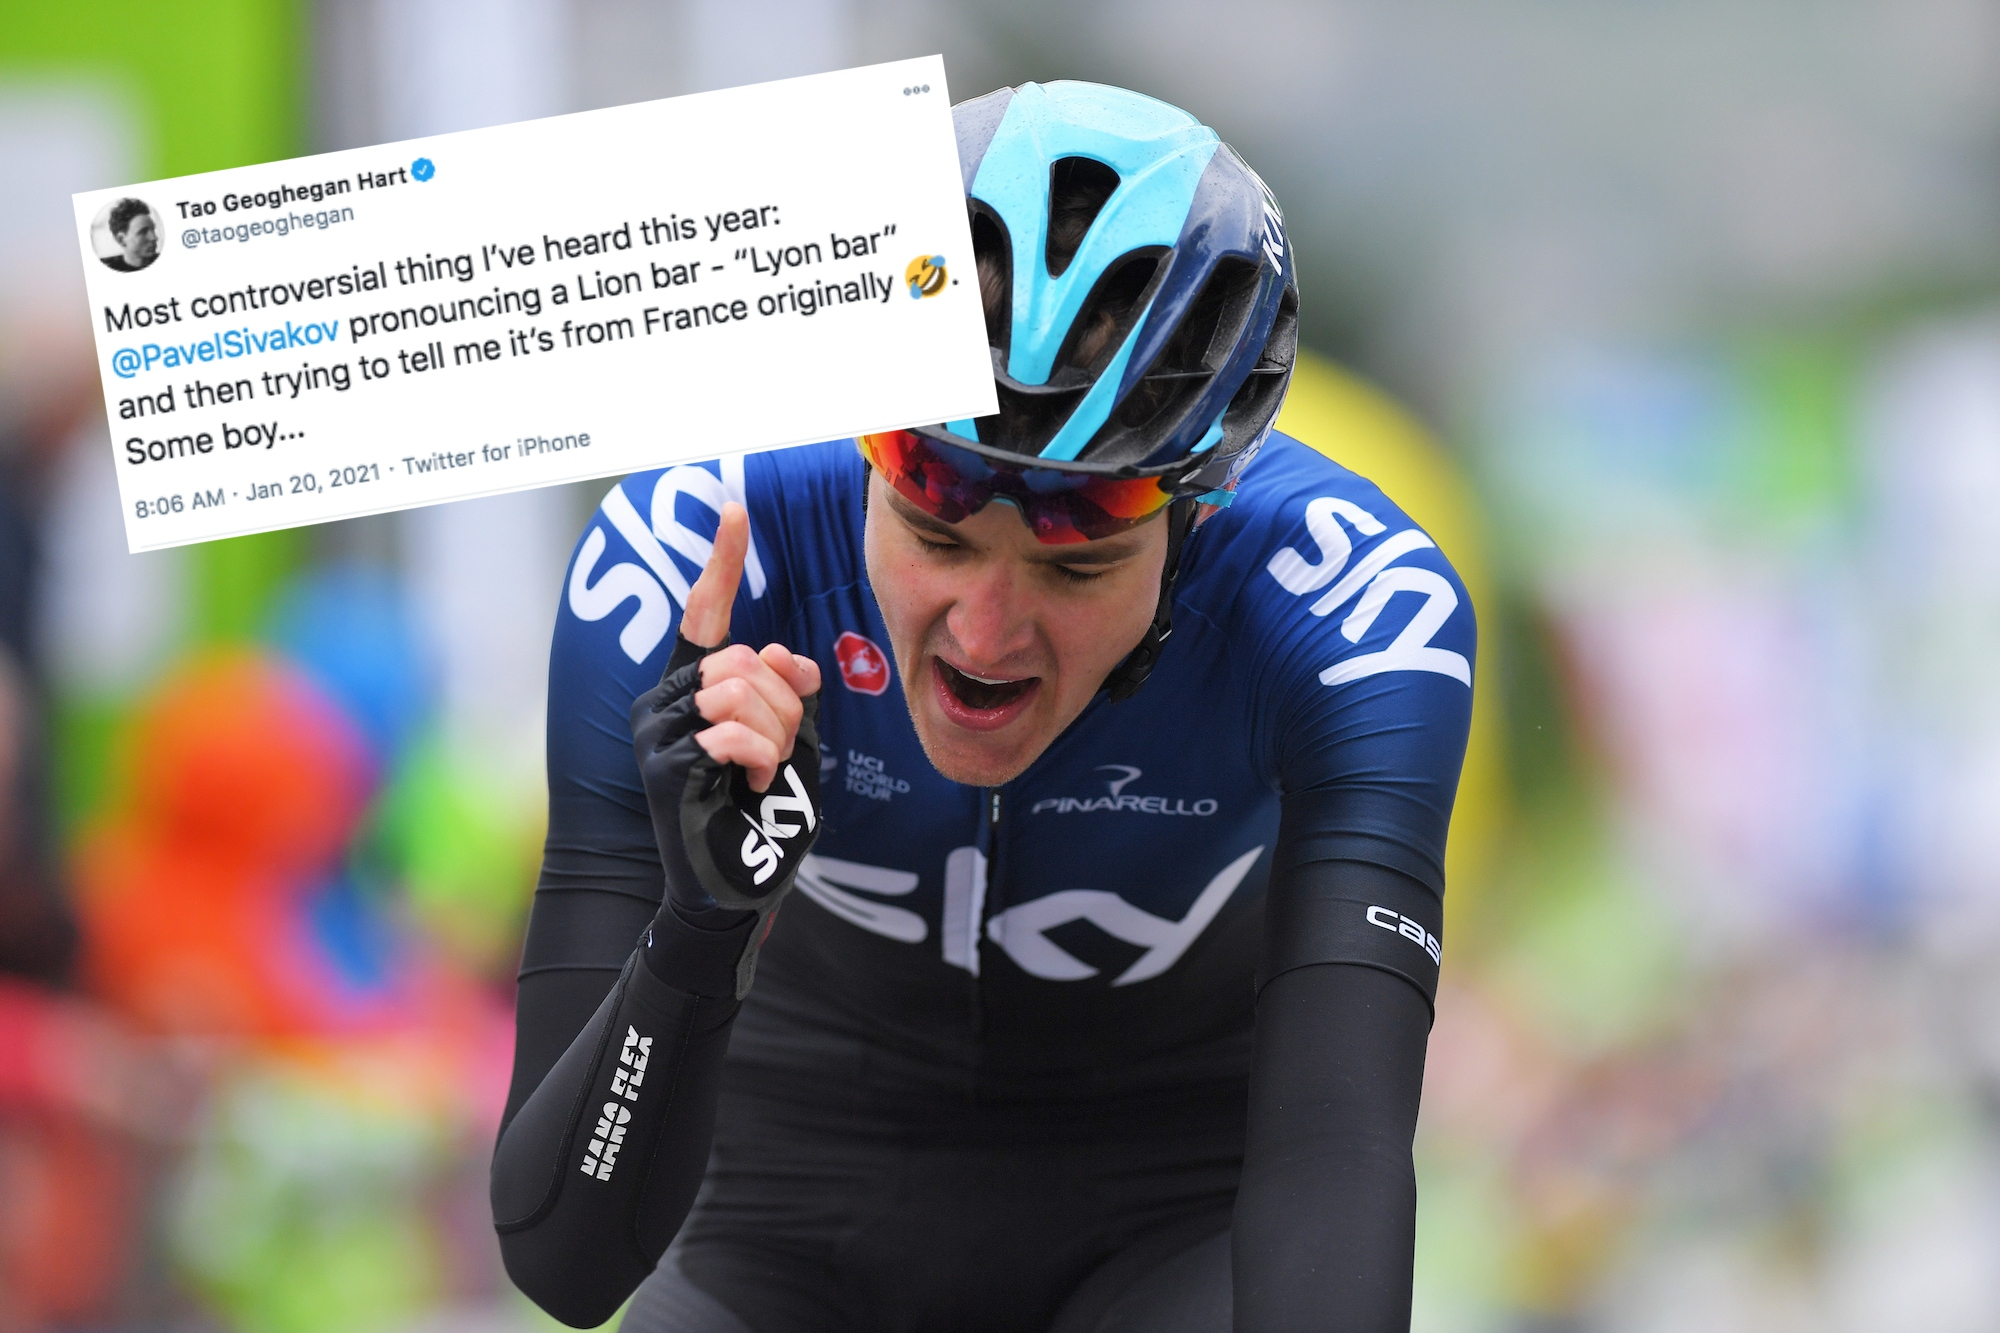 Tweets of the Week: Ineos prova il golf, Wout van Aert lavora duro e Pavel Sivakov su Lion bar